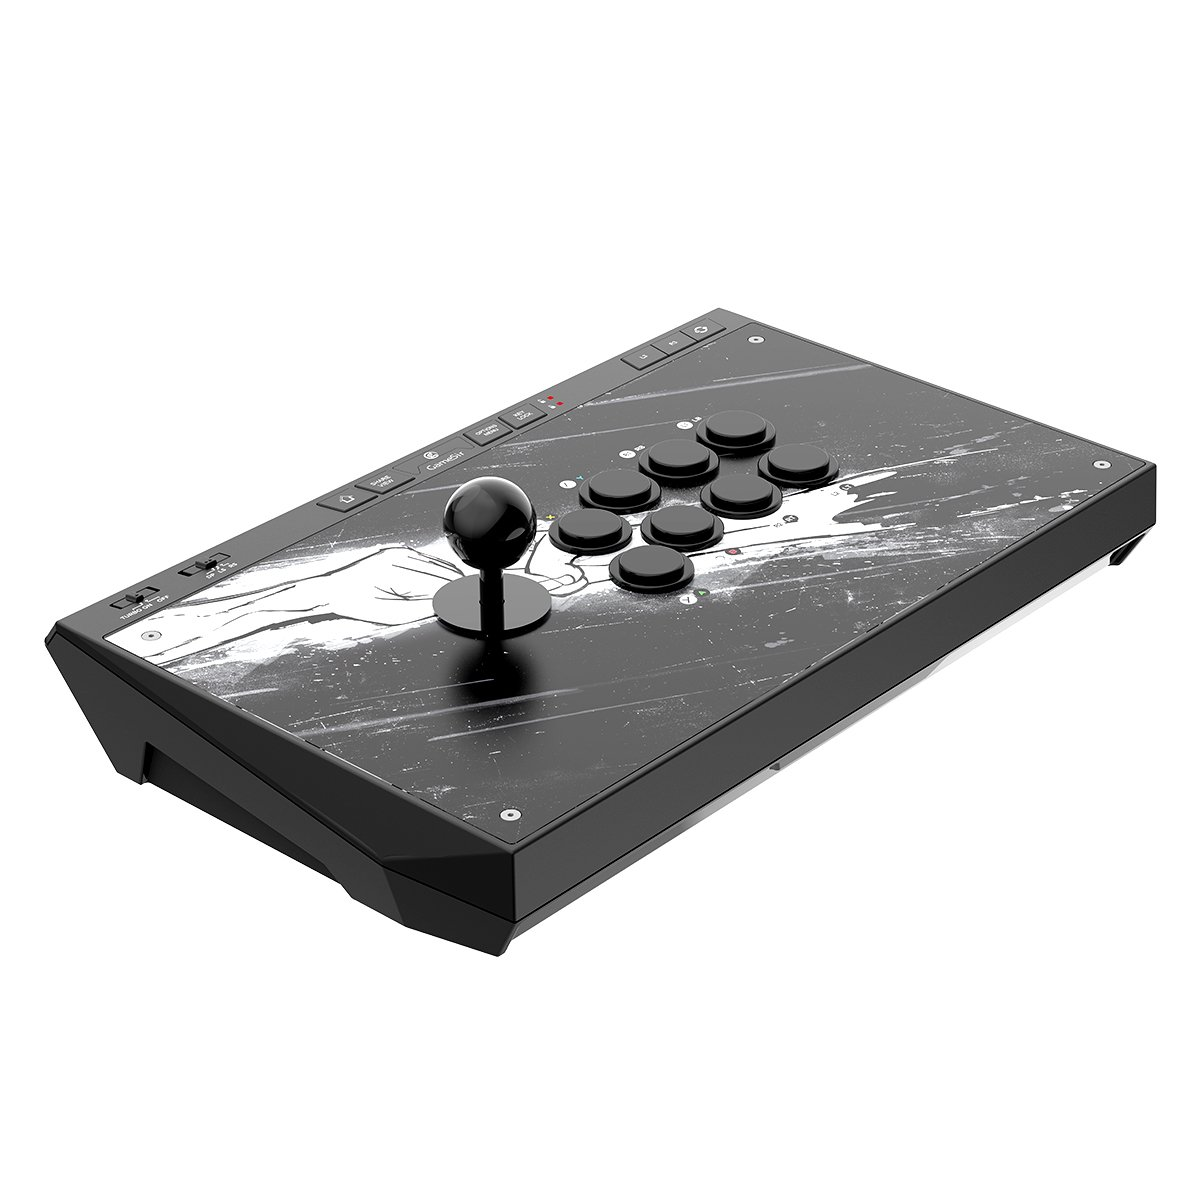 GameSir C2 Arcade Fightstick per Xbox One, PlayStation 4, Windows PC e Android GameSir-C2